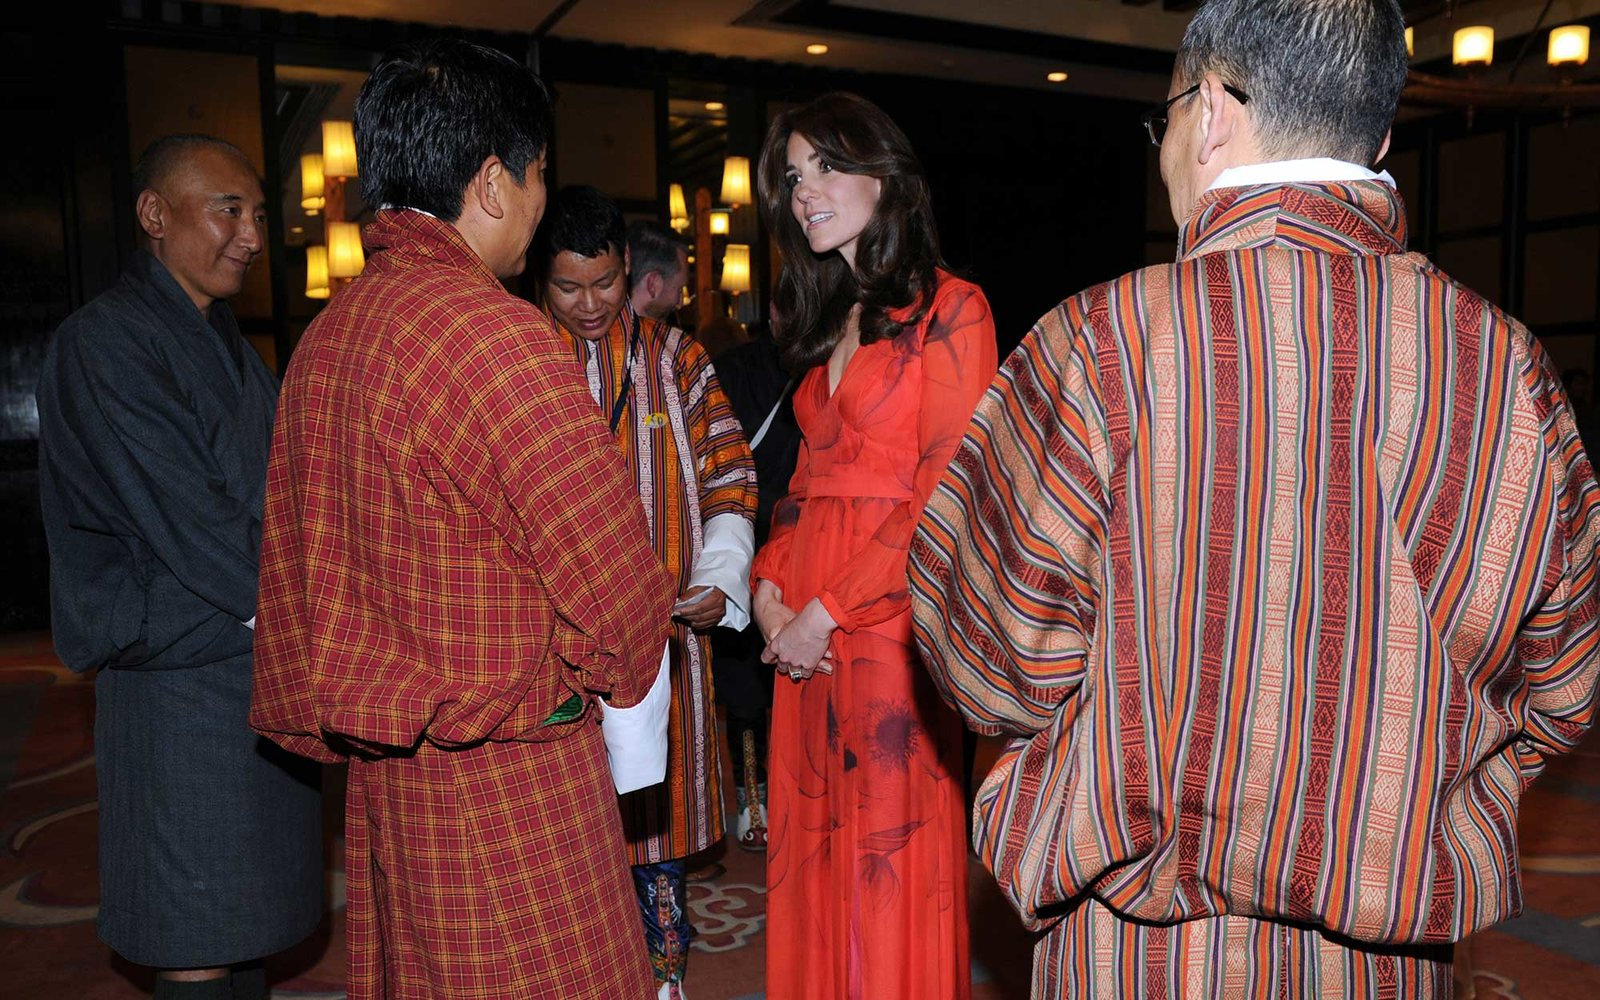 THIMPHU, BHUTAN - APRIL 15: Catherine, Duchess of Cambridge attends a reception celebrating UK and Bhutanese friendship and cooperation at the Taj Hotel on April 15, 2016 in Thimphu, Bhutan. The Royal couple are visiting Bhutan as part of a week long visi